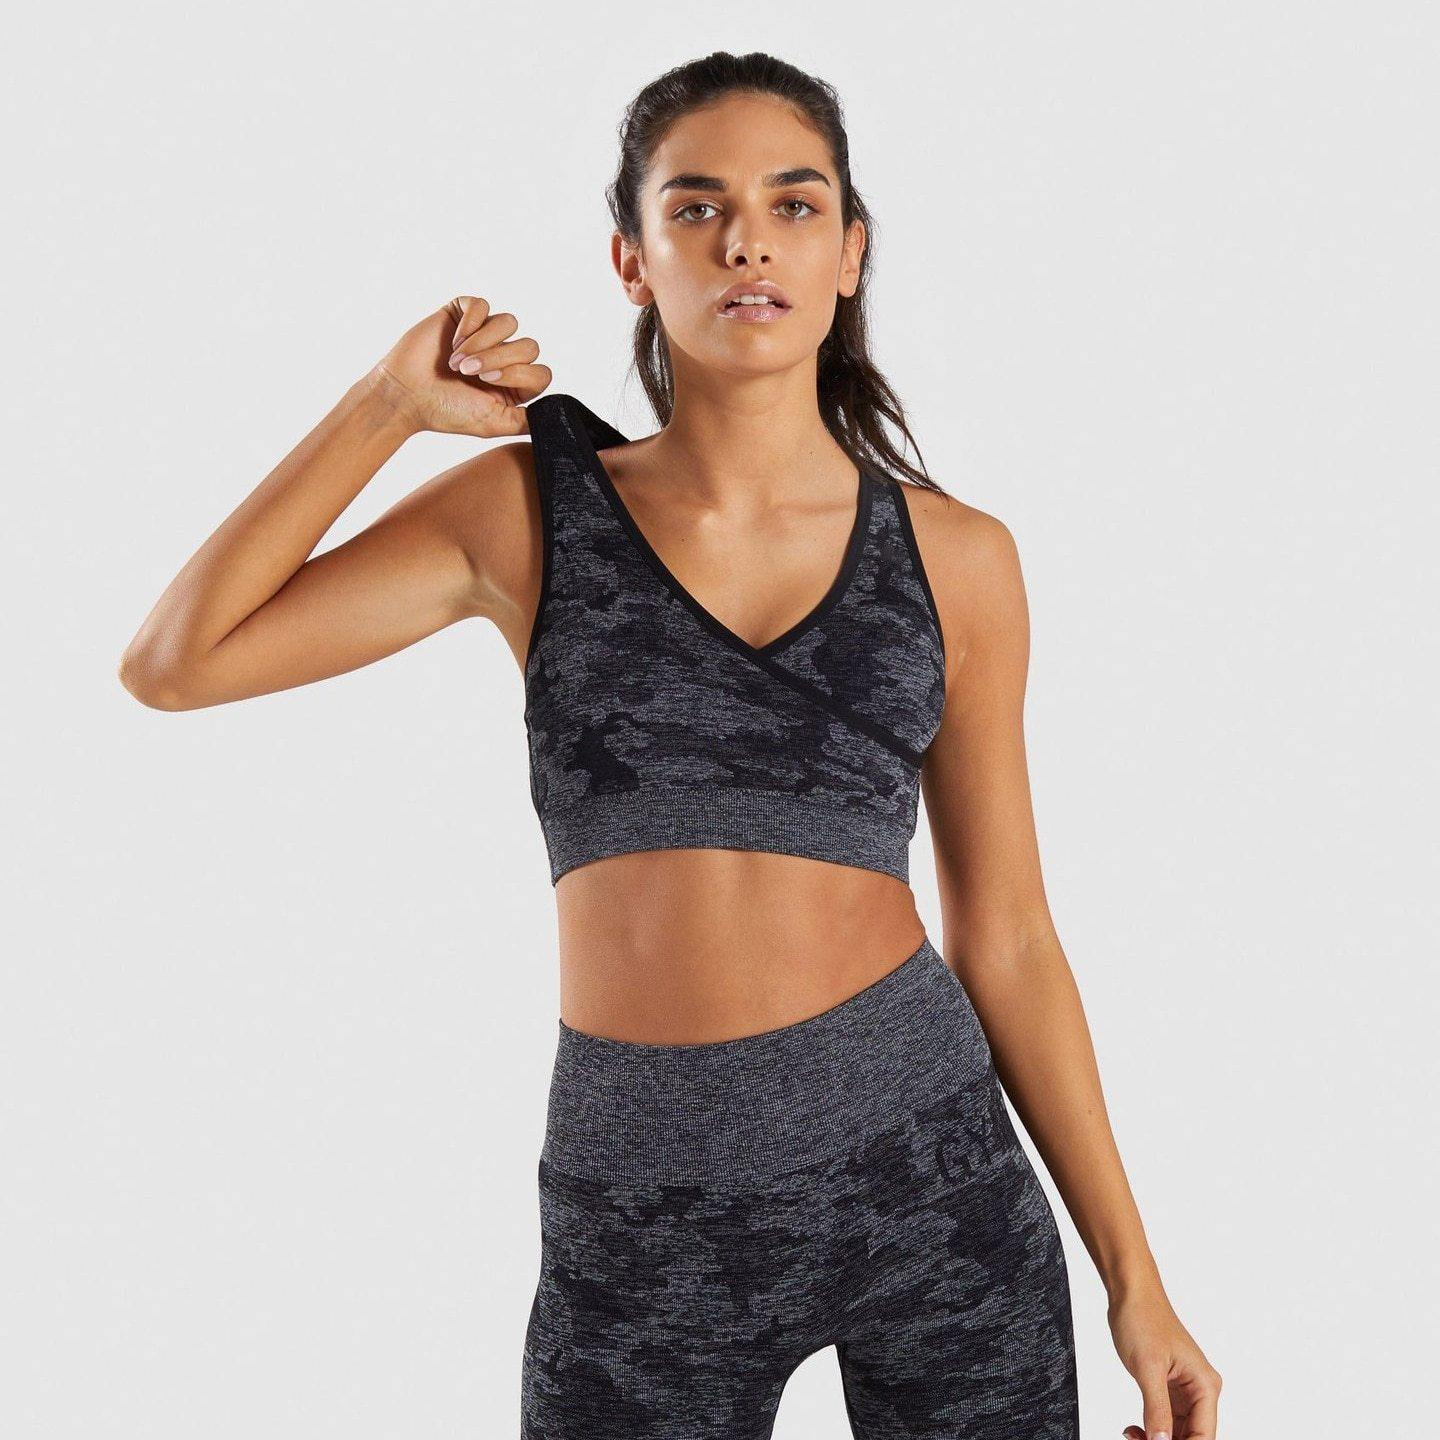 Shop Yoga Outfits 2 Piece Set Camo Seamless Leggings and Sports Bra Gym Exercise - JOMOBabe Online Store | Women's Workout Clothes & Gym Wear | JOMOBabe